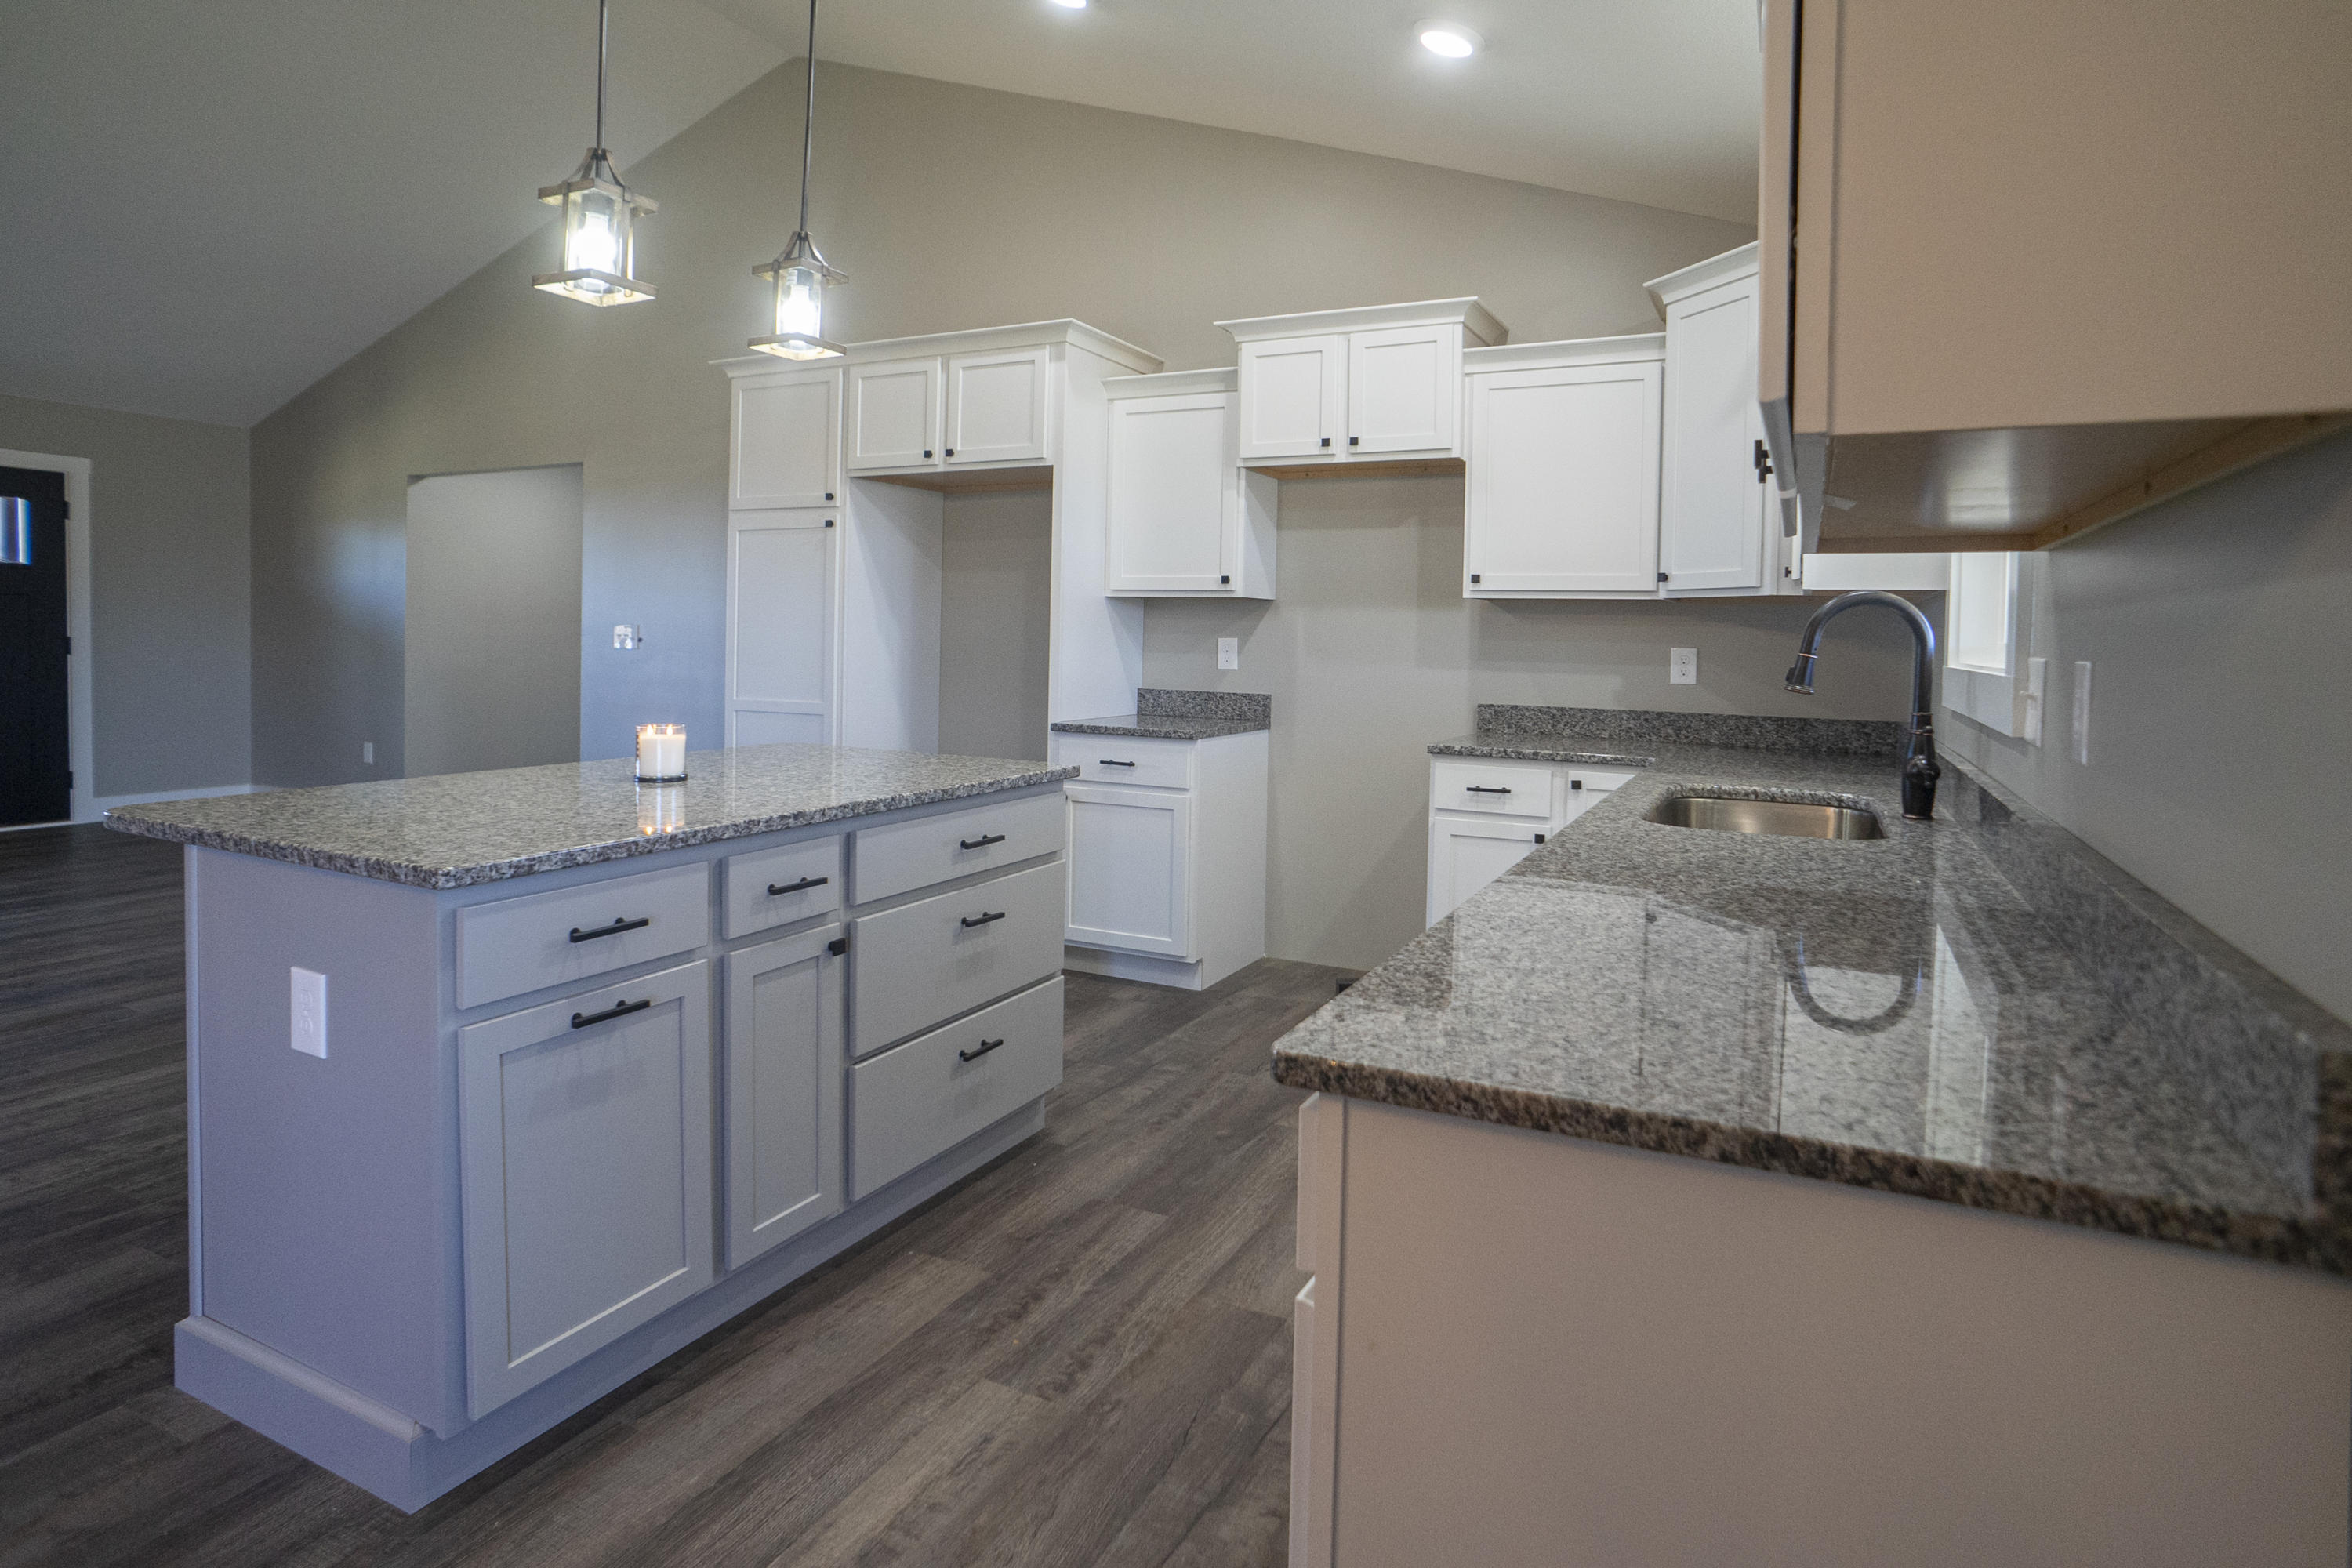 1519 Rosewood Dr Drive Preview Image 4